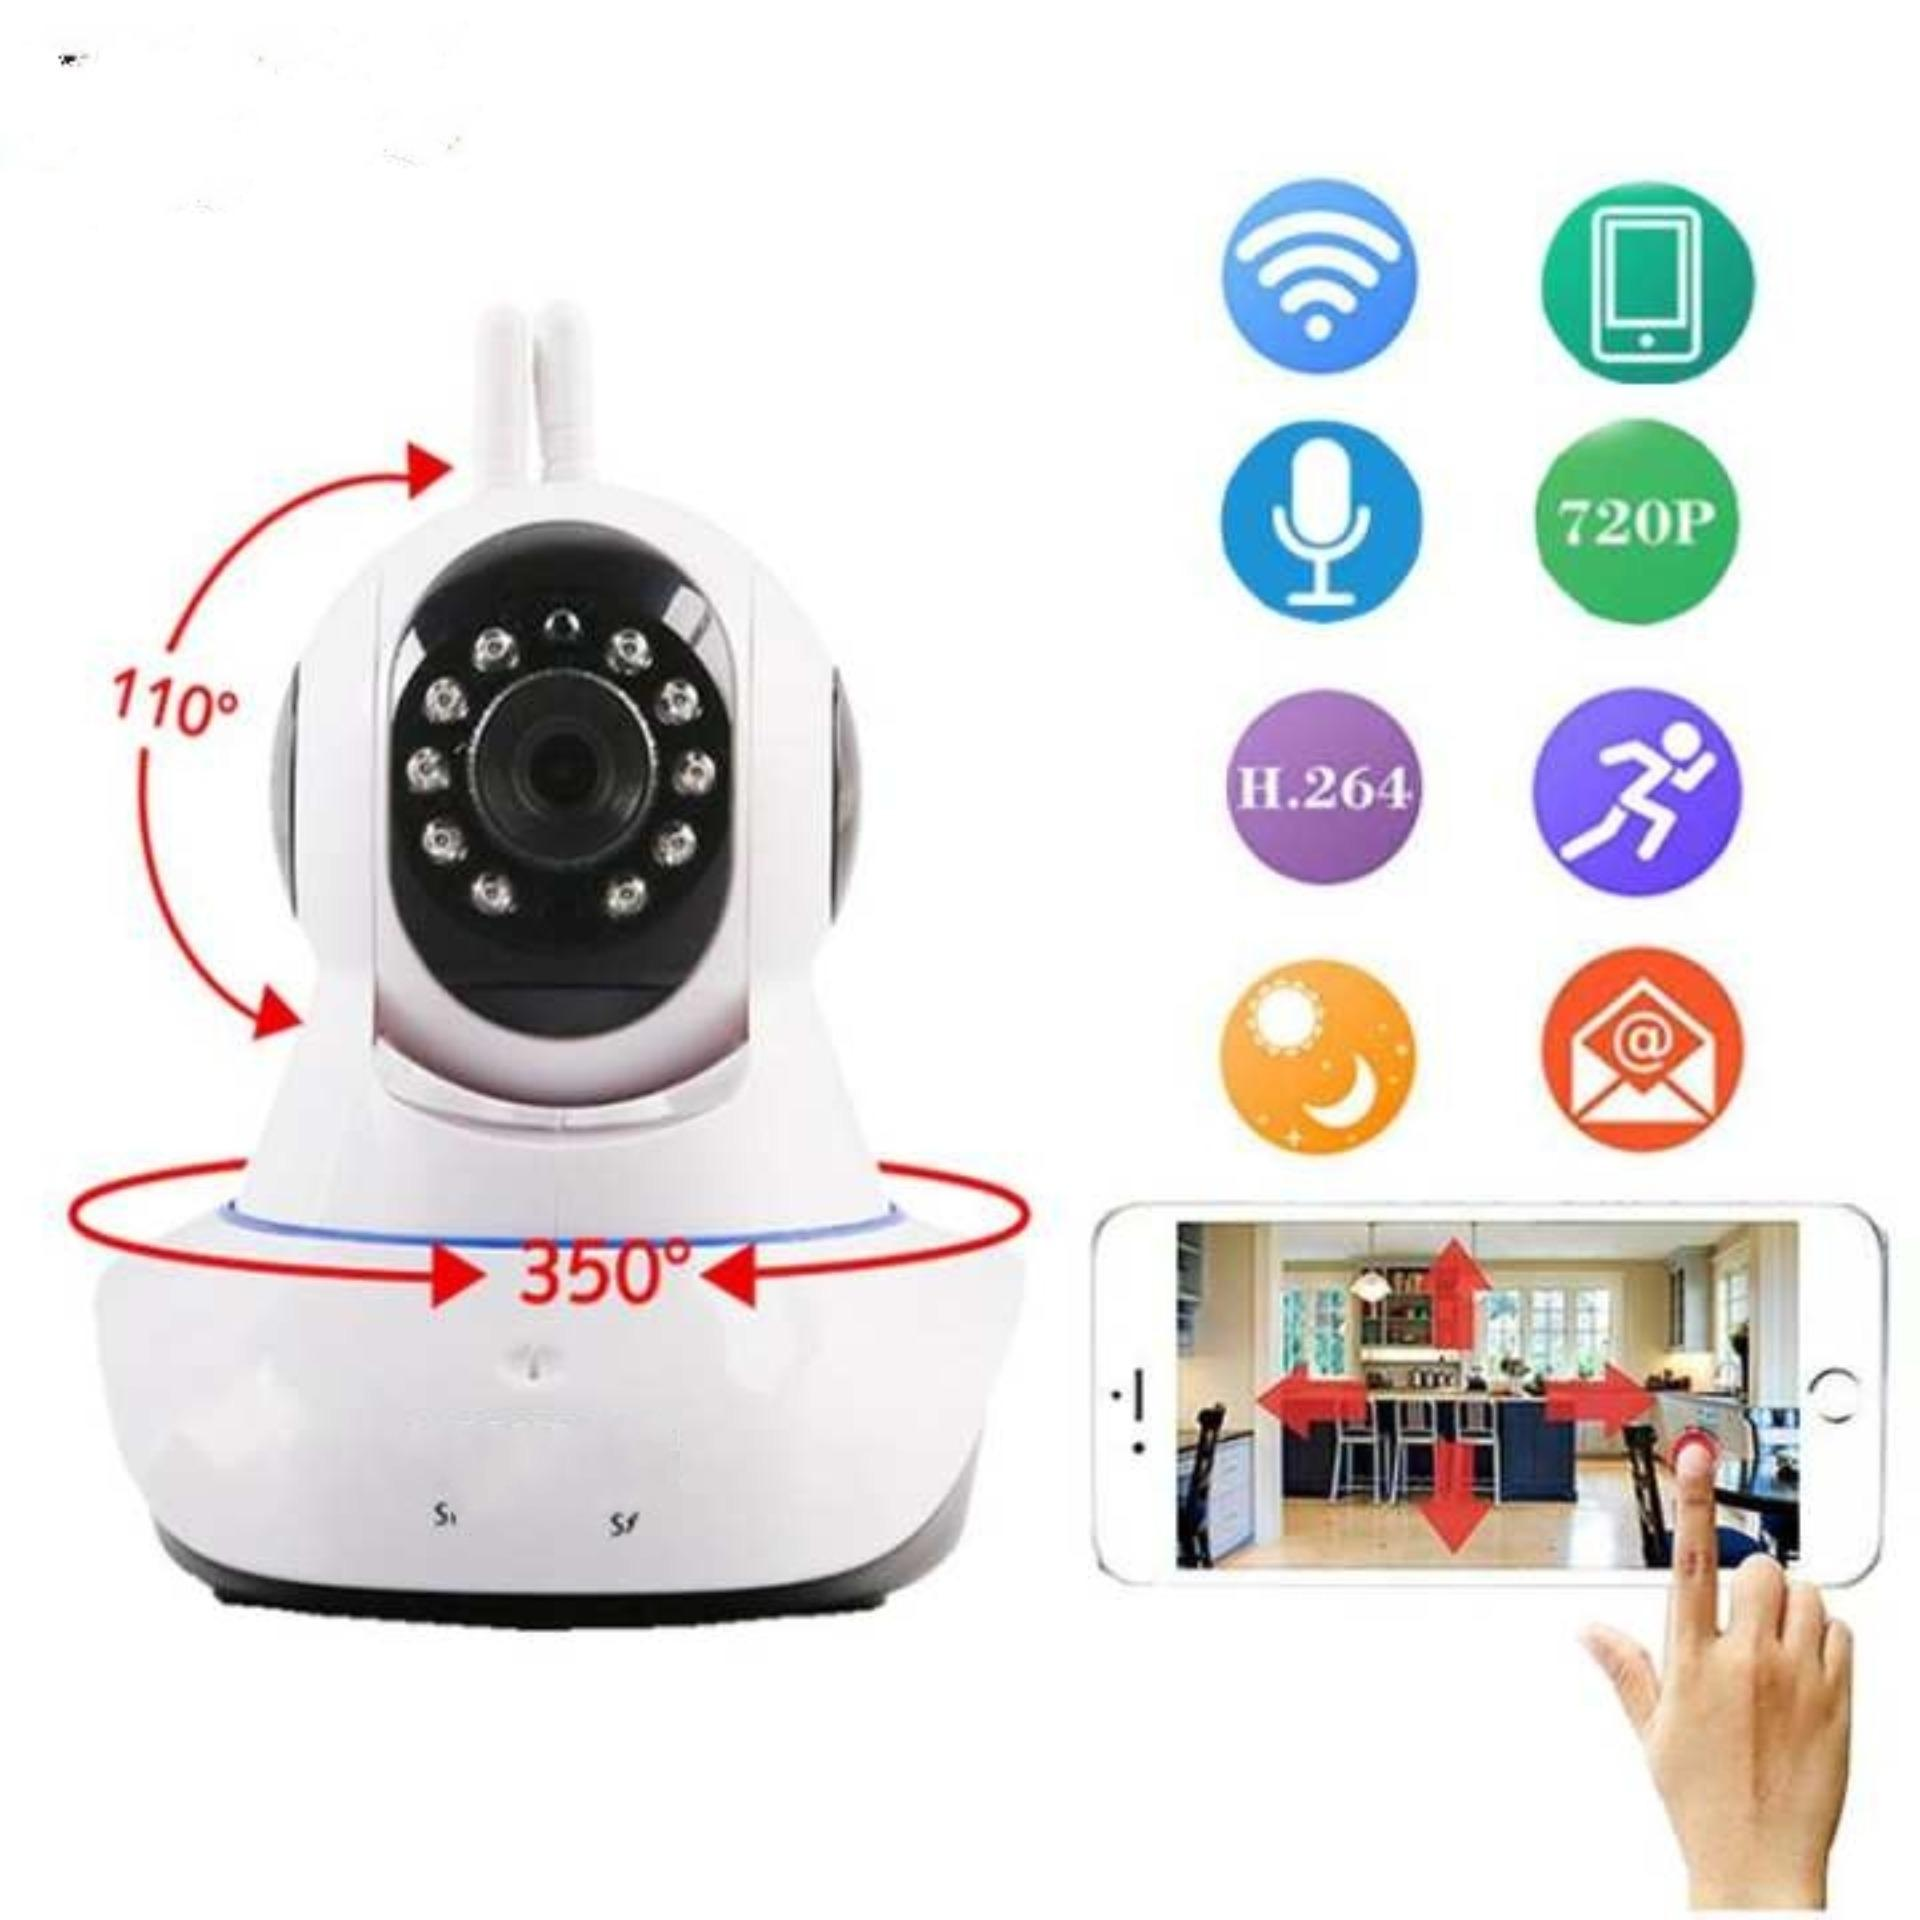 Indoor Security Camera, Baby Monitor - TENVIS T8810 WirelessSurveillance  WiFi IP / Network Cam, Night Vision, Motion Detection& 2 Way Audio, White